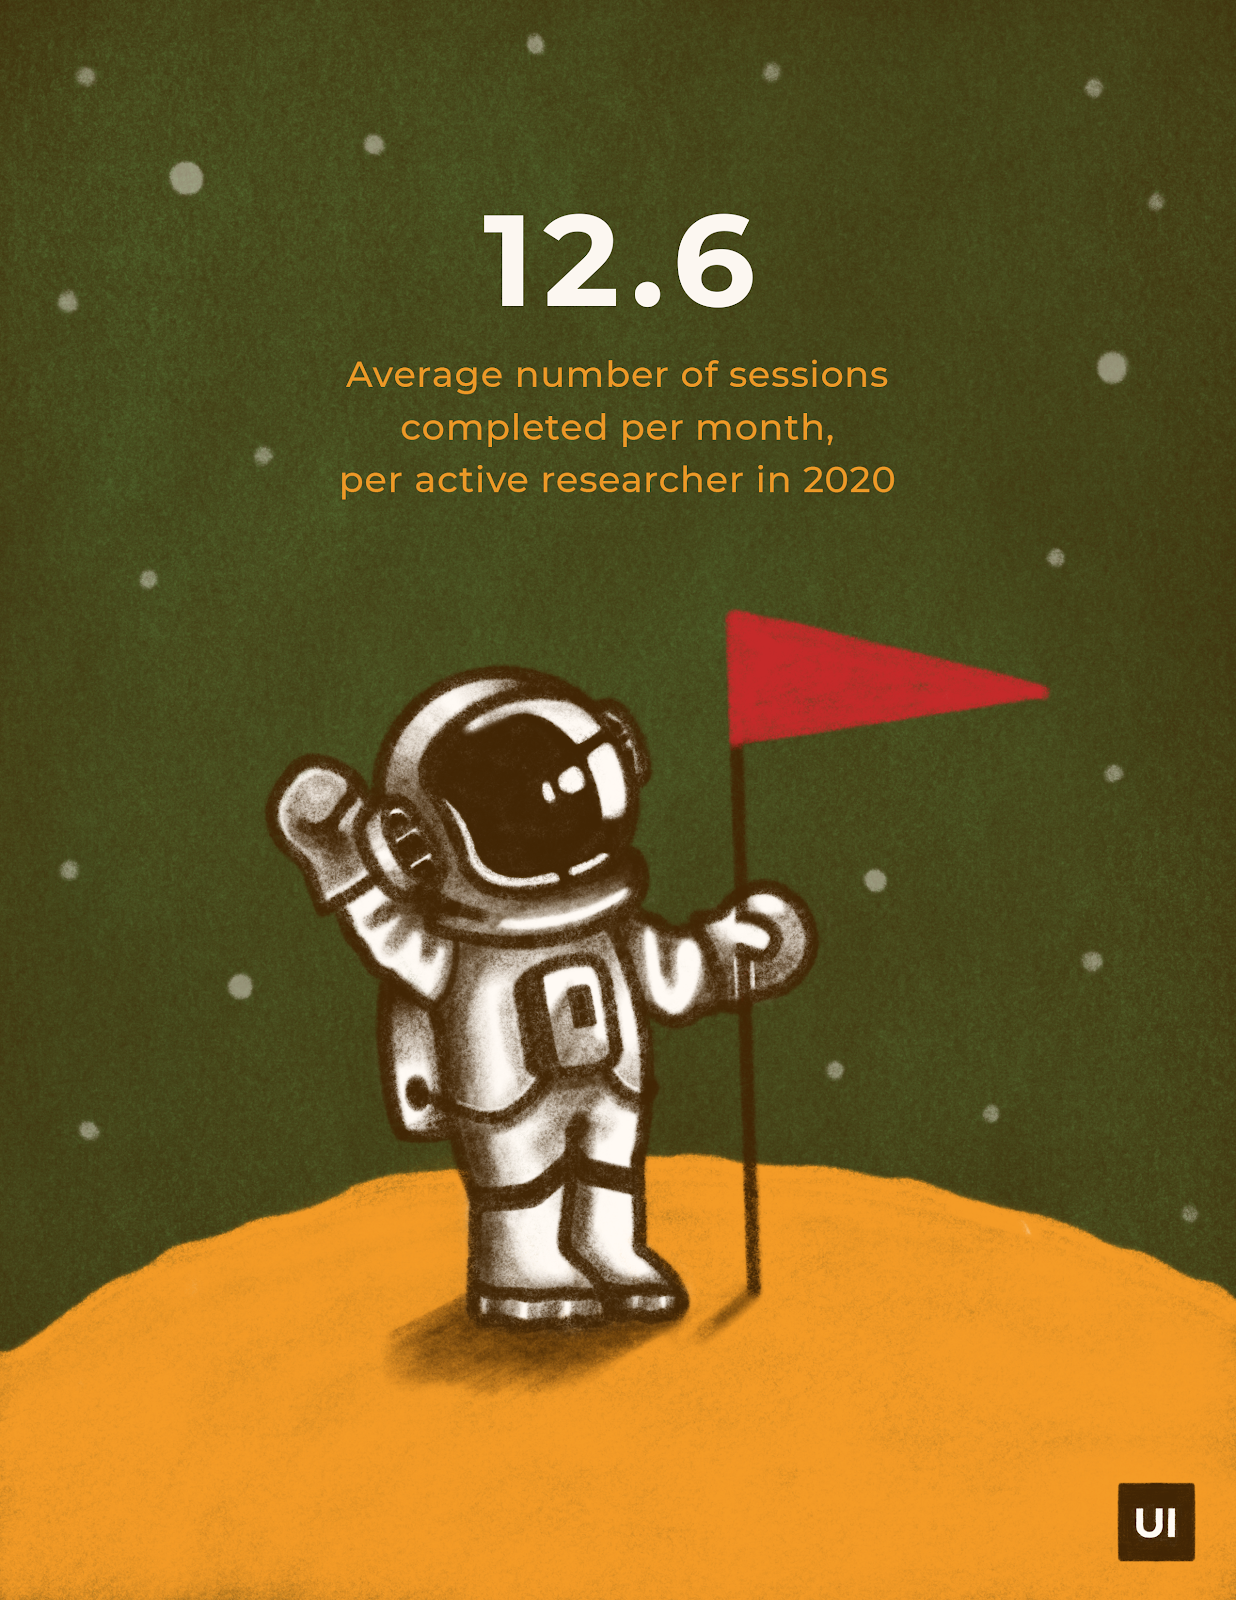 Astronaut on moon holding a red flag. Text with User Interviews average number of research sessions statistic.